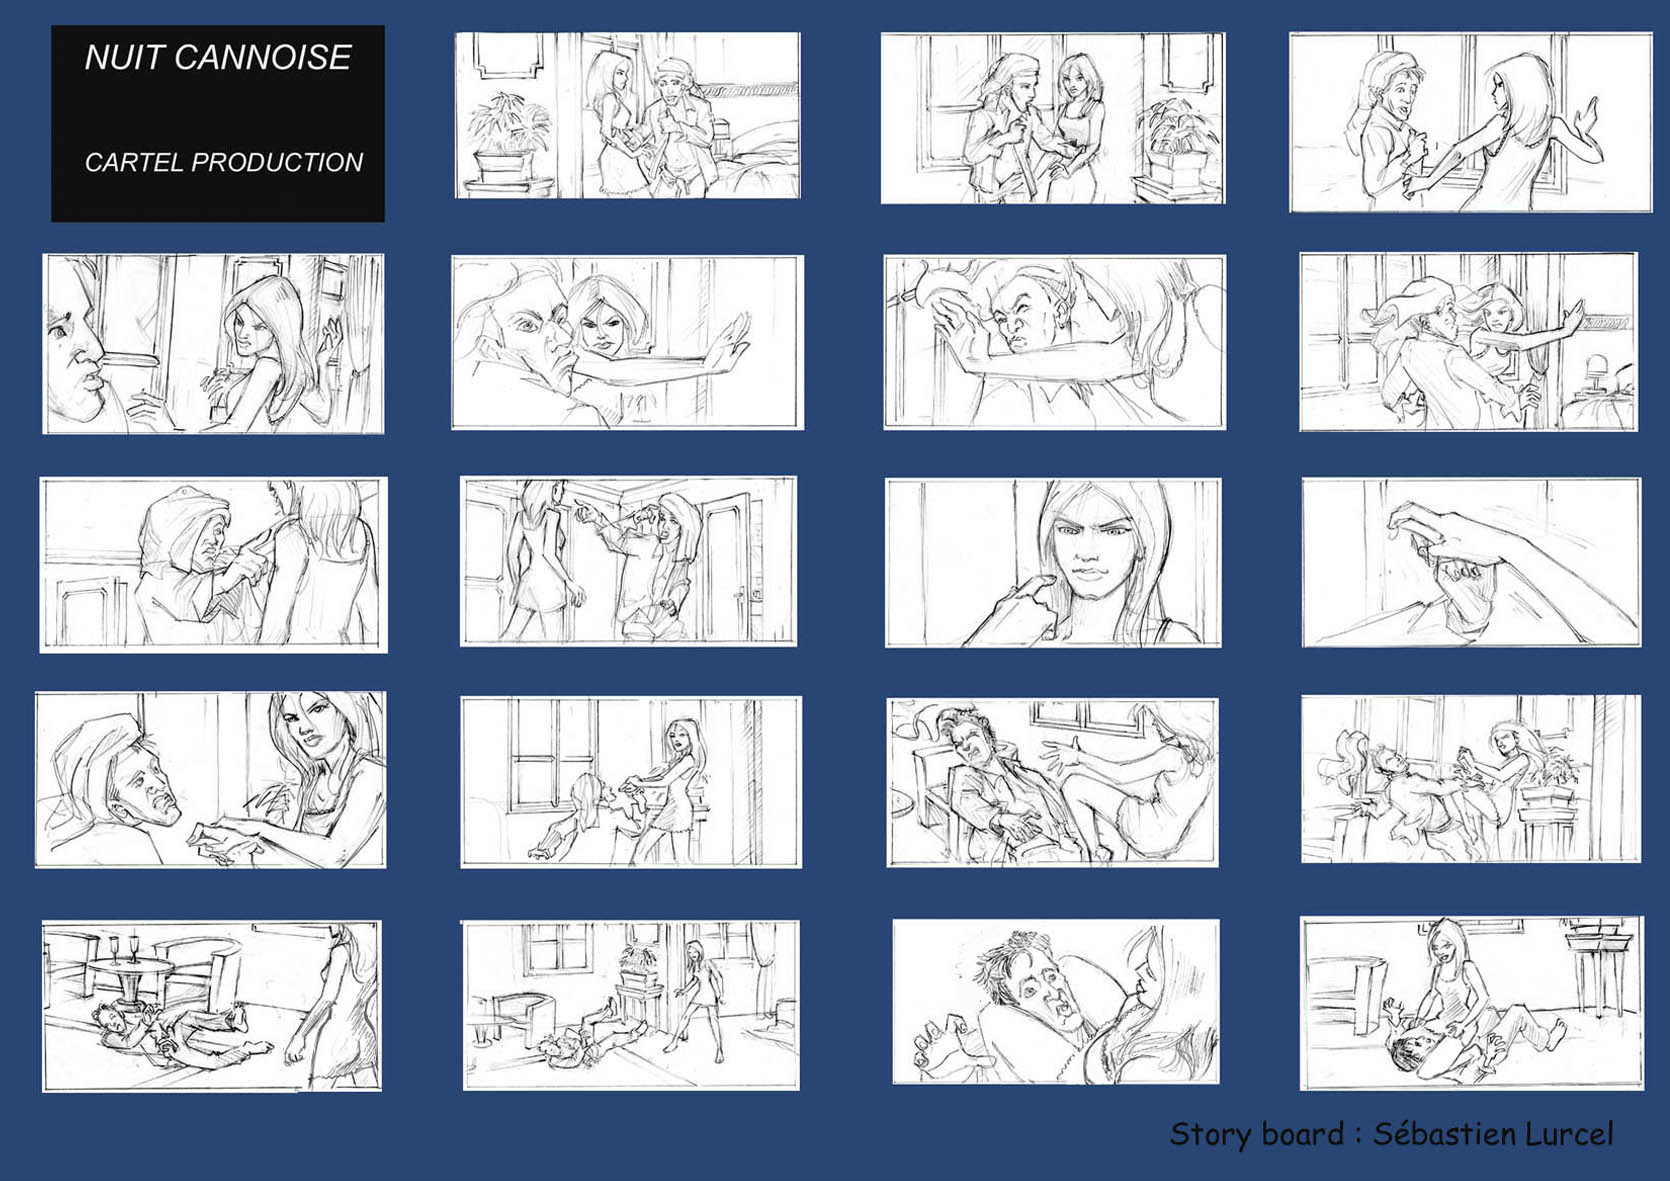 nuit cannoise planche 1-book